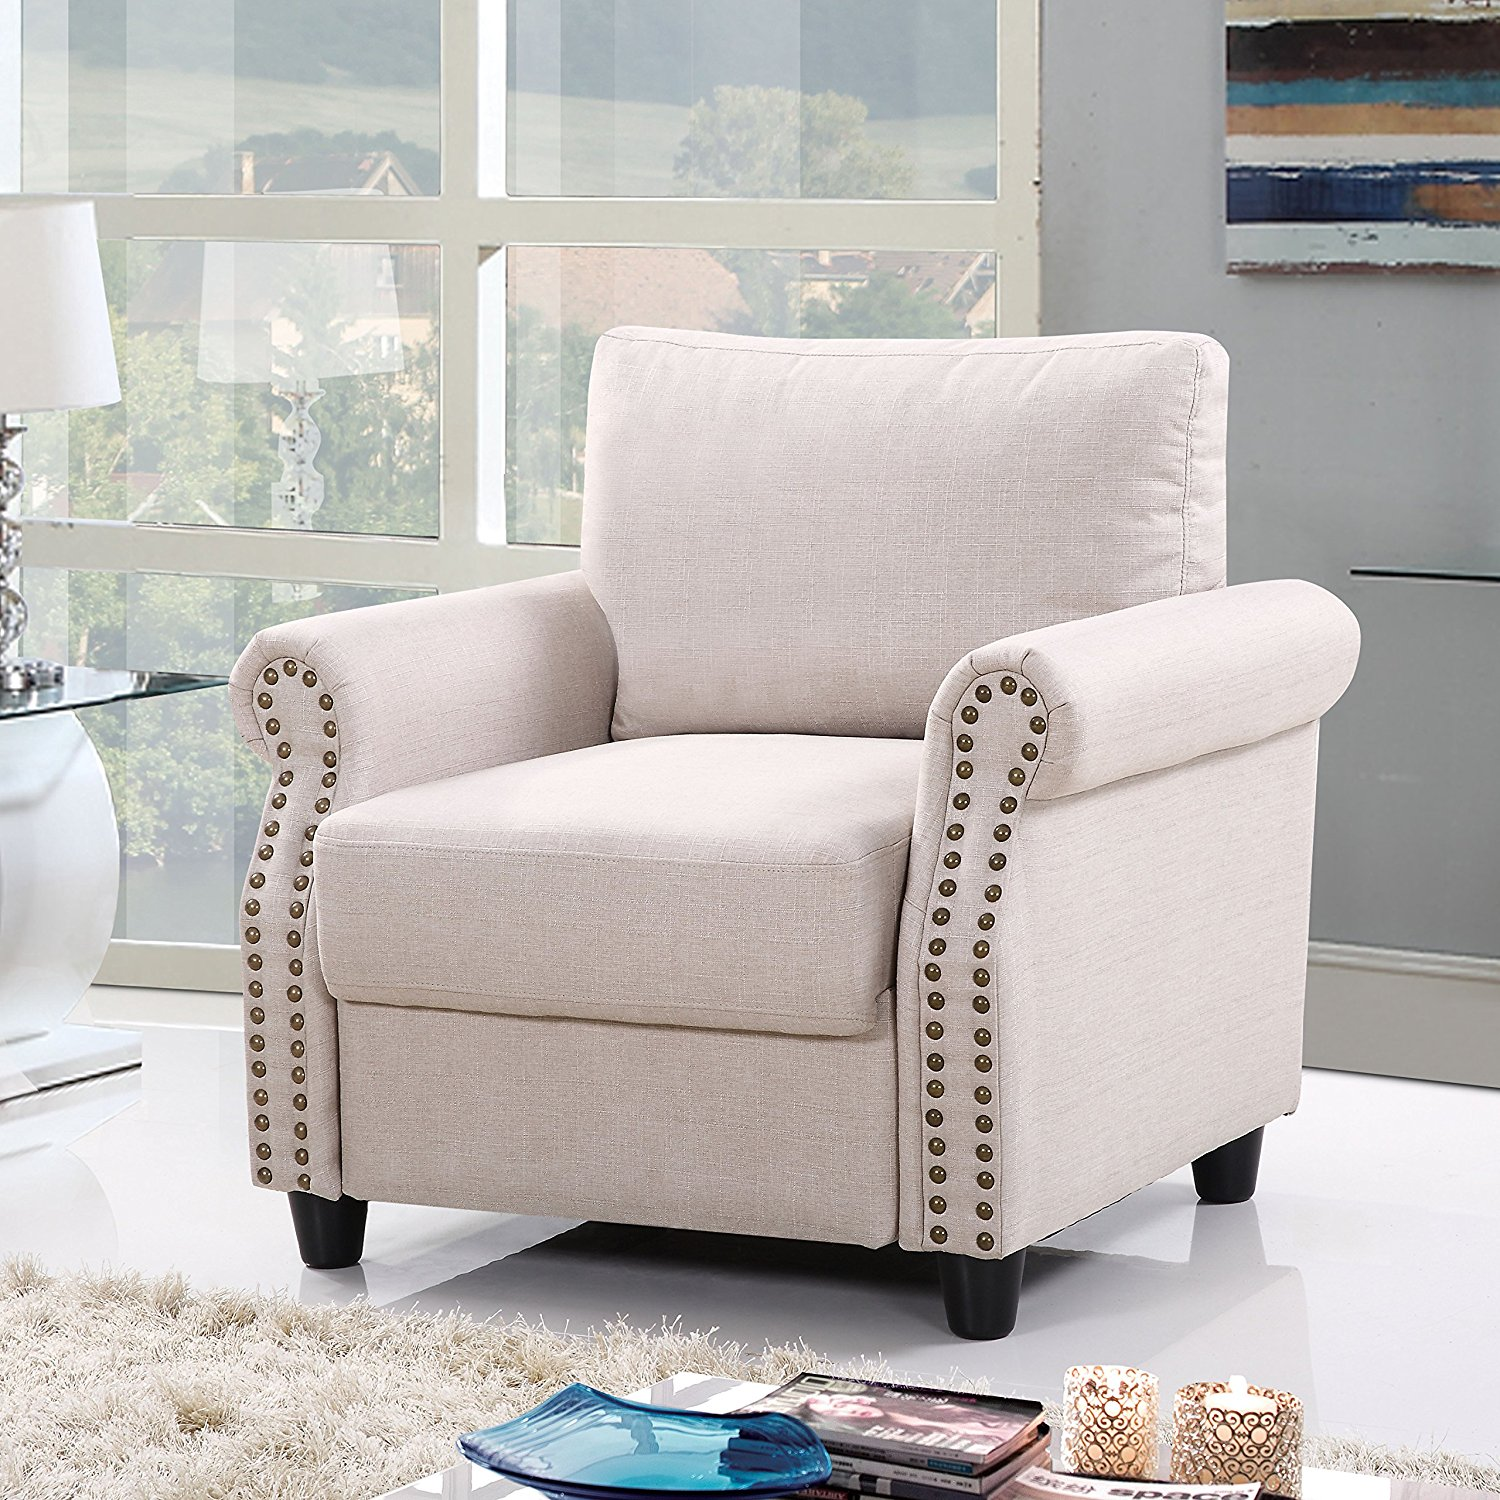 Doma Roma Furniture Beige Living Room Armchair